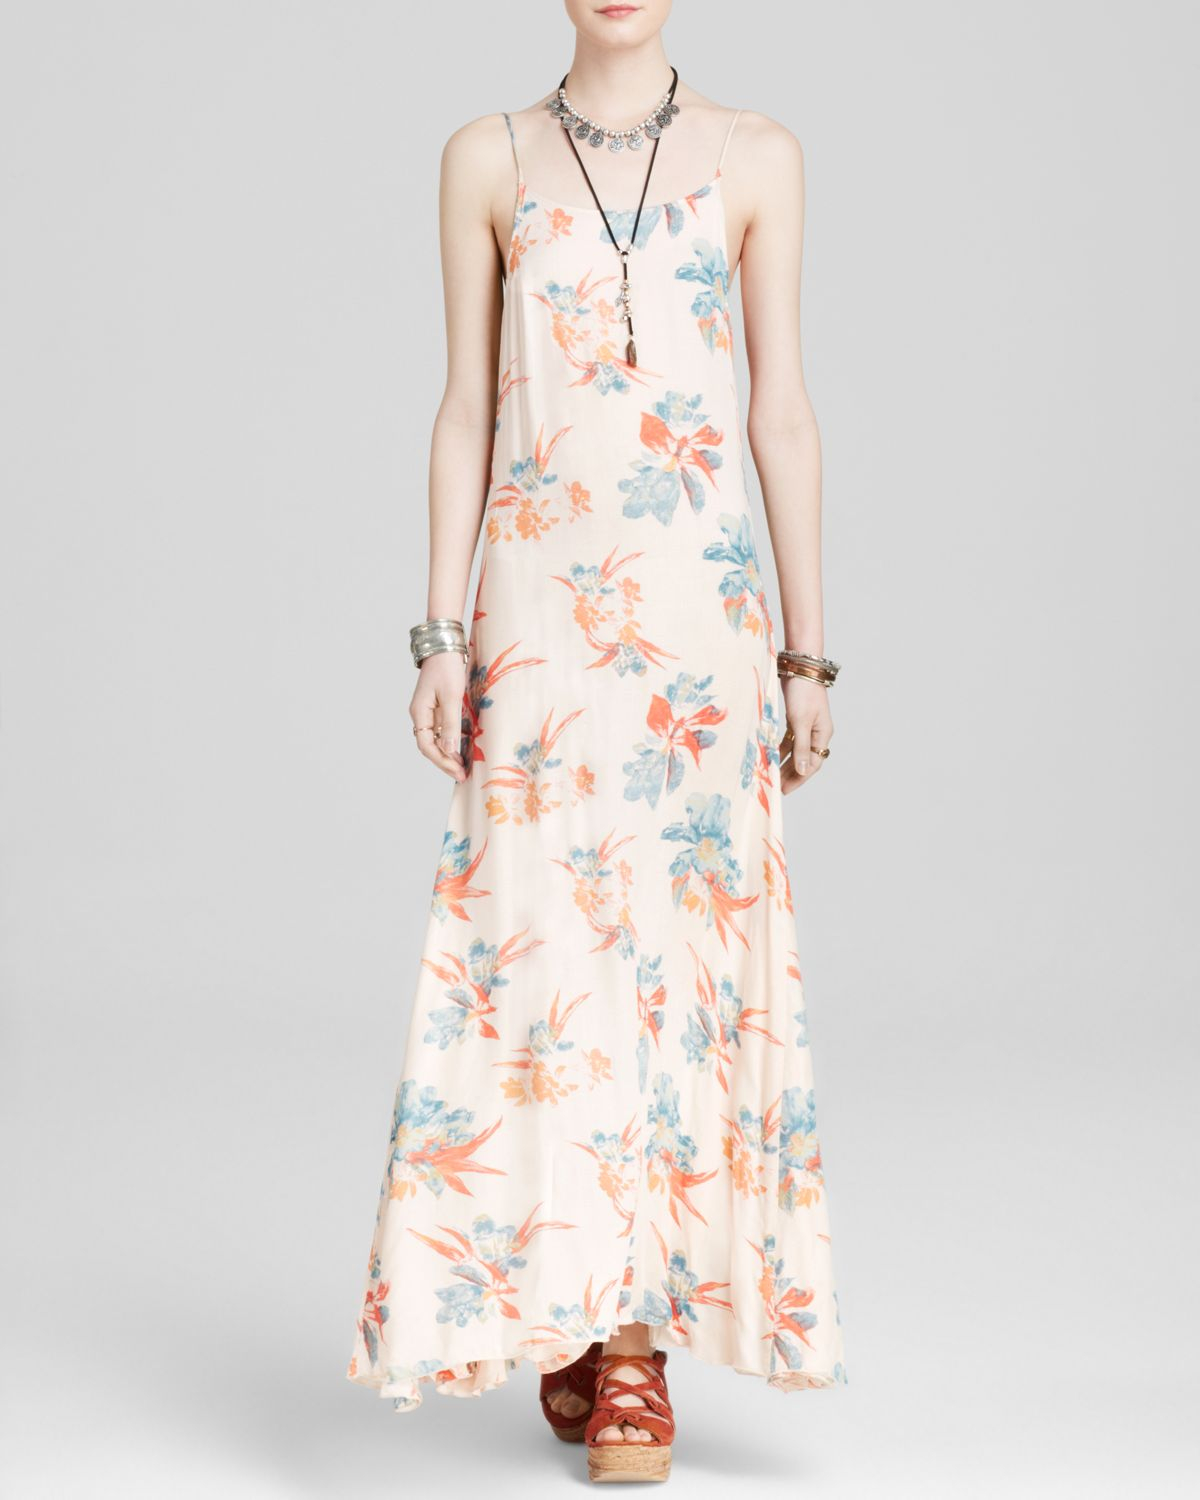 229bca721f514 Free People Slip Dress - Go To Printed Star Chasing in Pink - Lyst